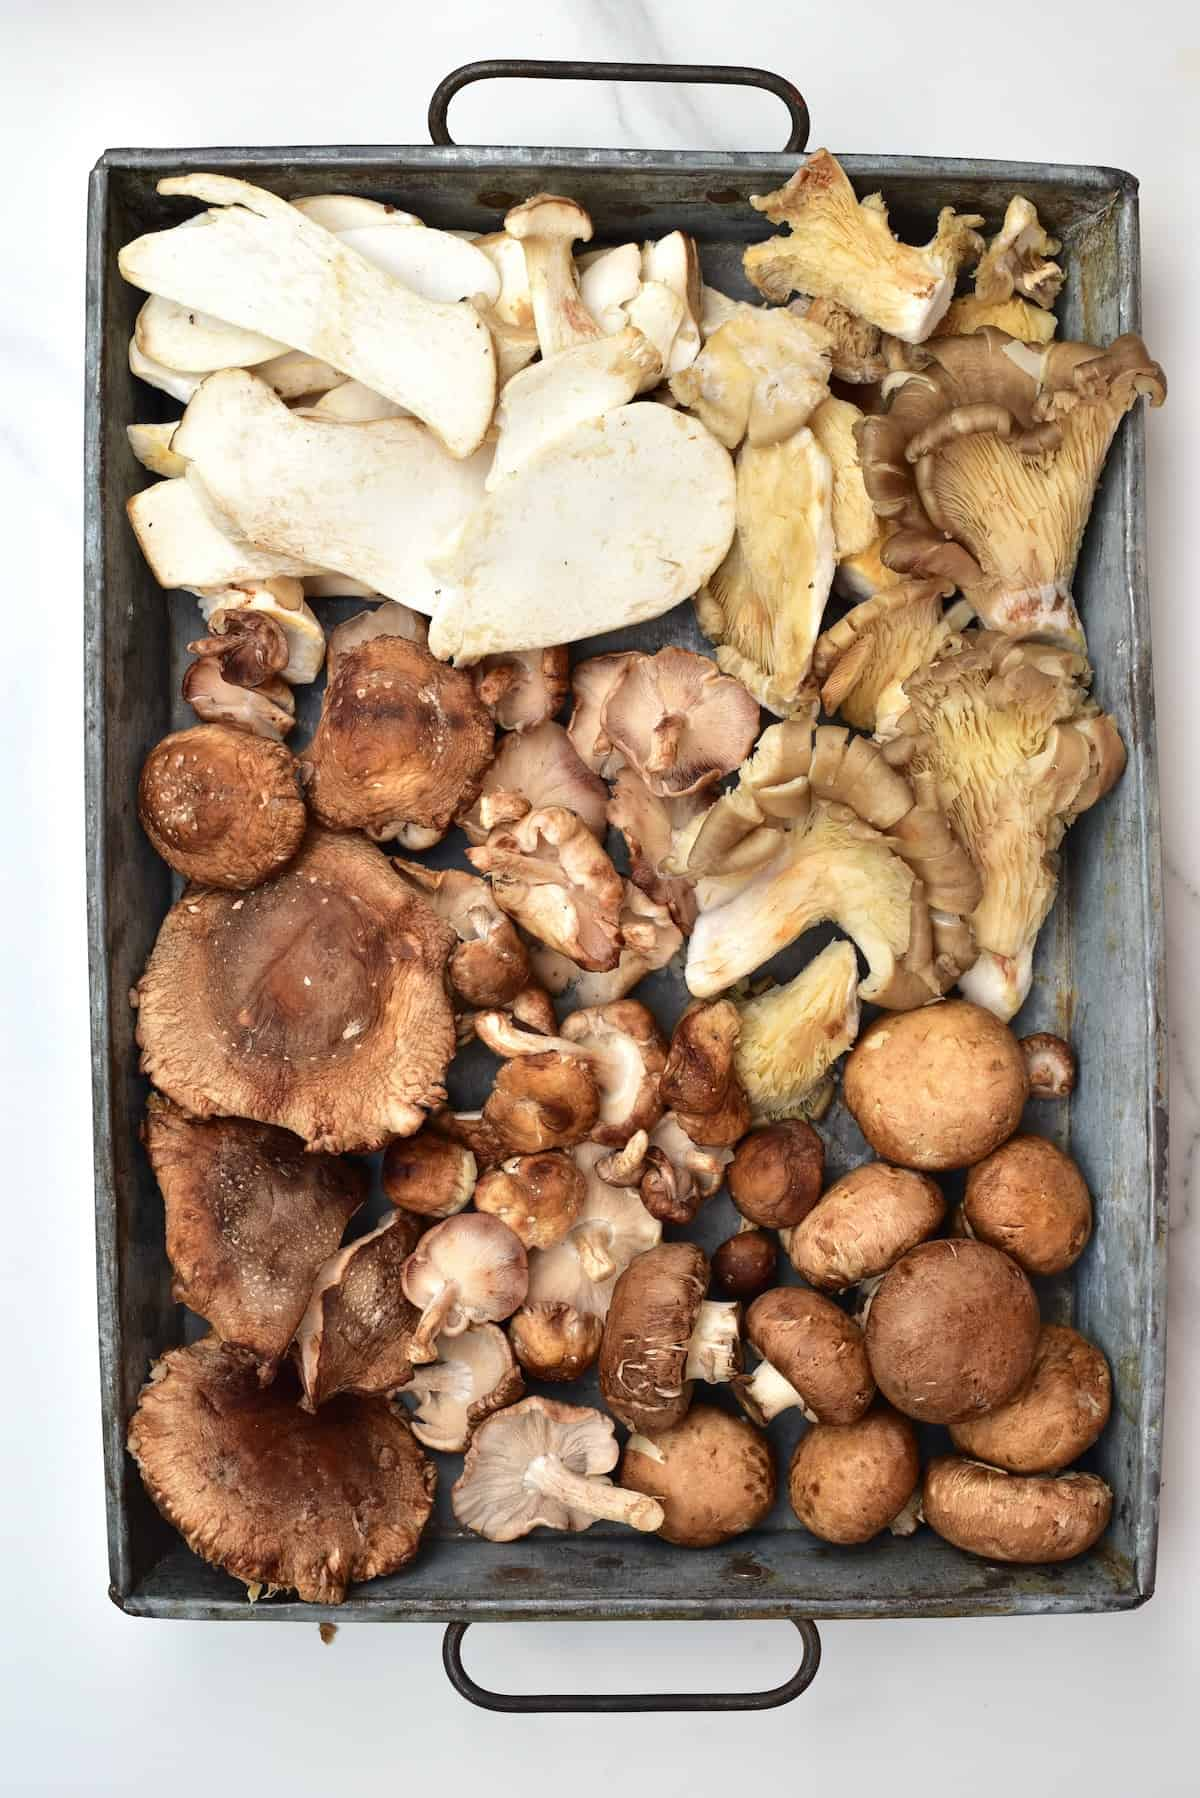 A selection of mushrooms in a tray